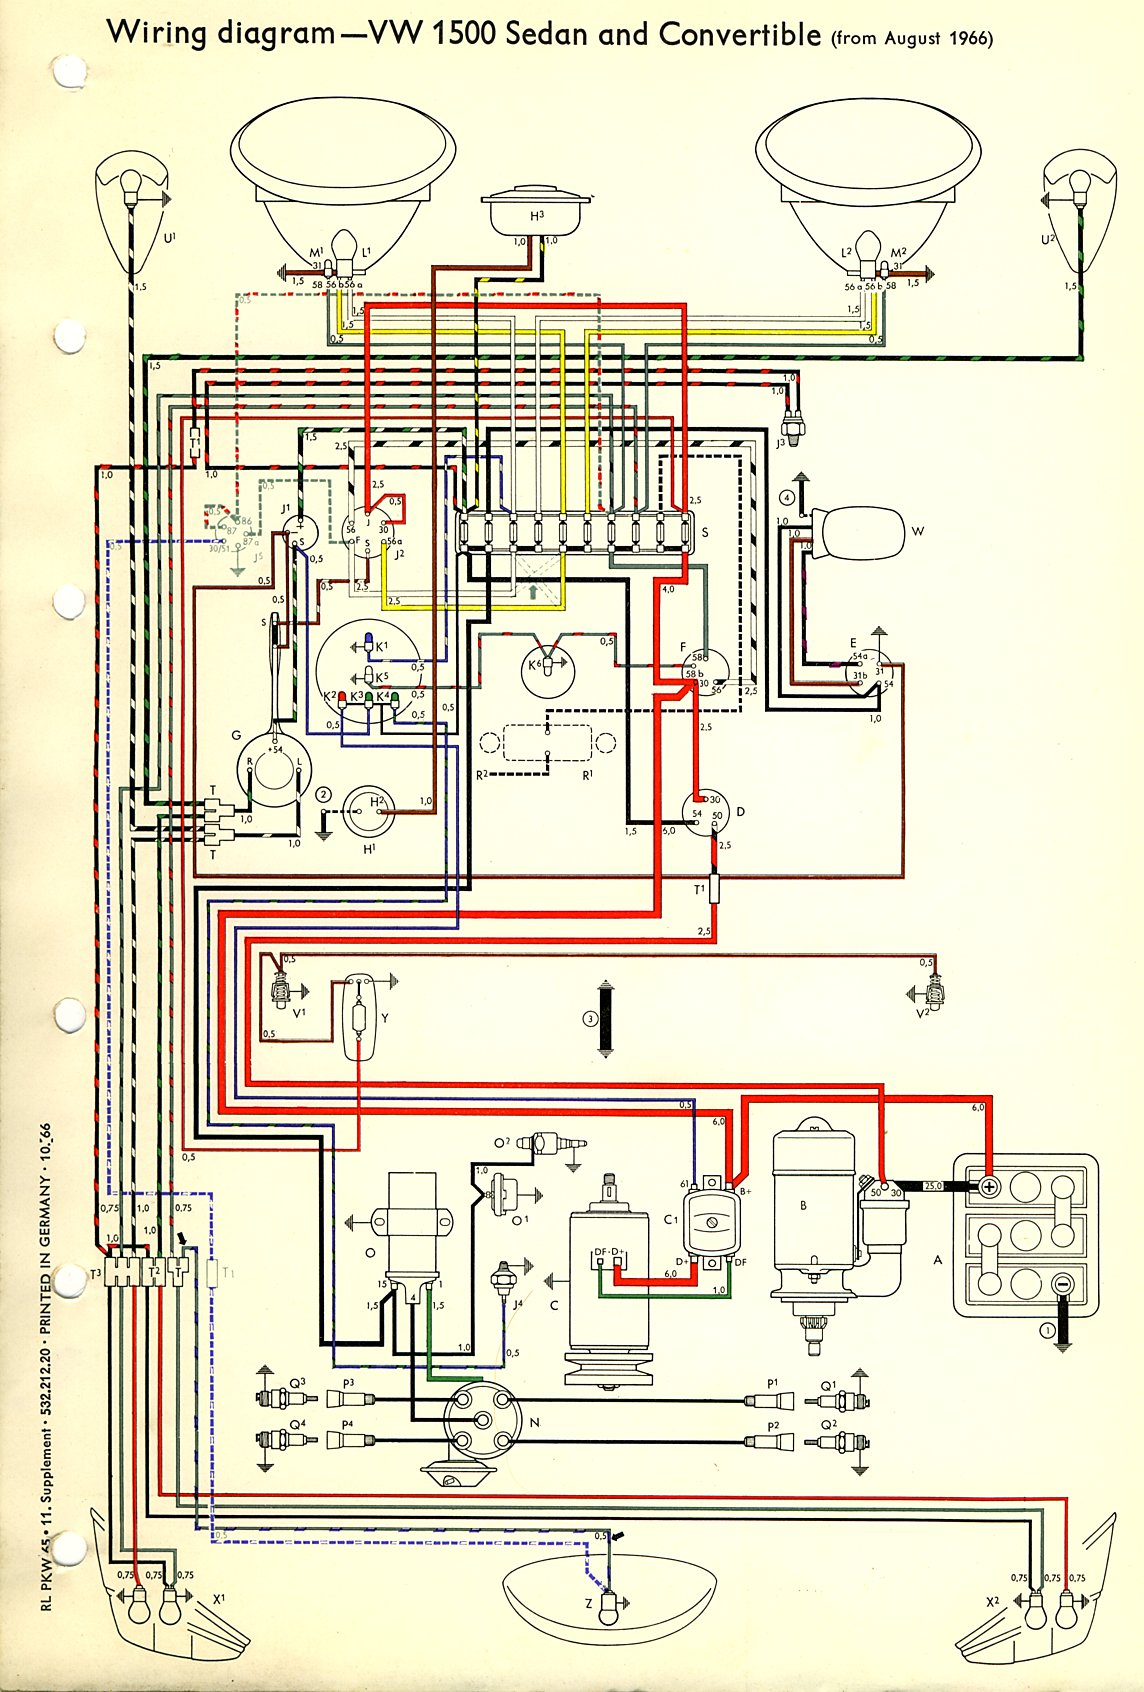 71 vw wiring diagram vw beetle wiring diagram wiring diagrams 1968 vw type 3 wiring diagram thesamba com type 1 wiring diagrams ignition switch parts wiring for 1973 vw type 3 71 super beetle engine diagram 71 vw wiring diagram